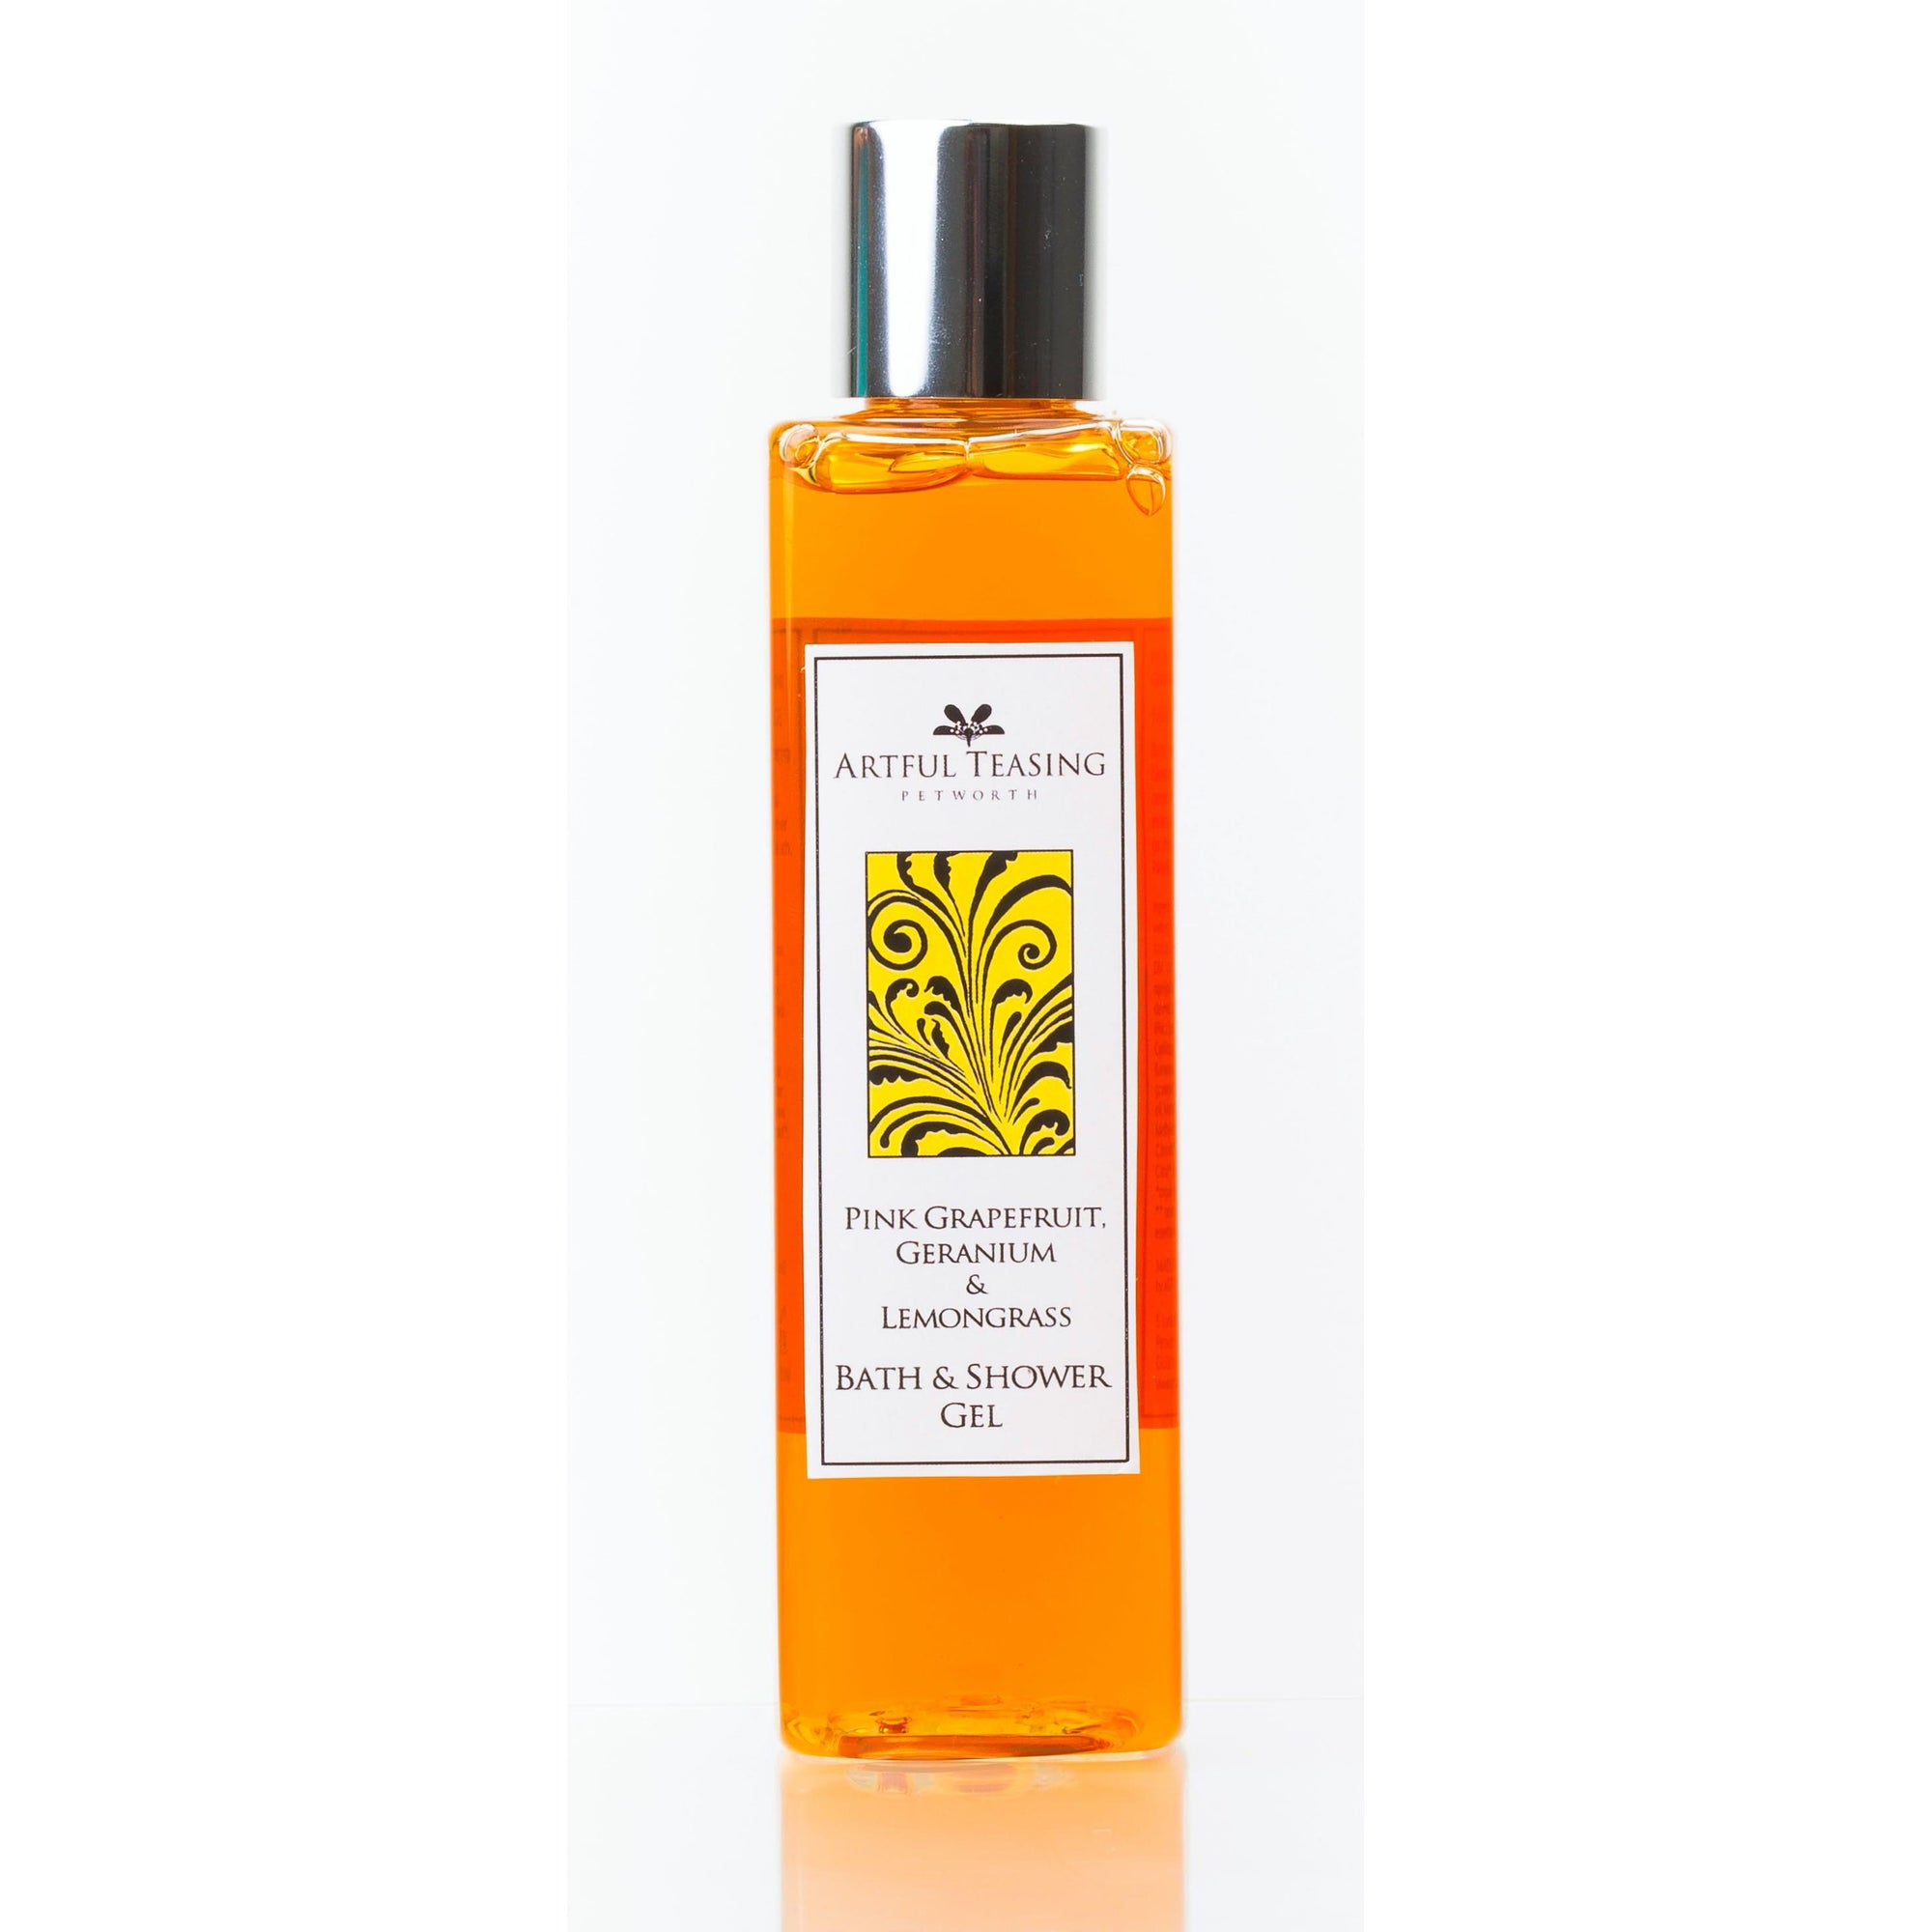 Pink Grapefruit, Geranium & Lemongrass Bath & Shower Gel 200ml